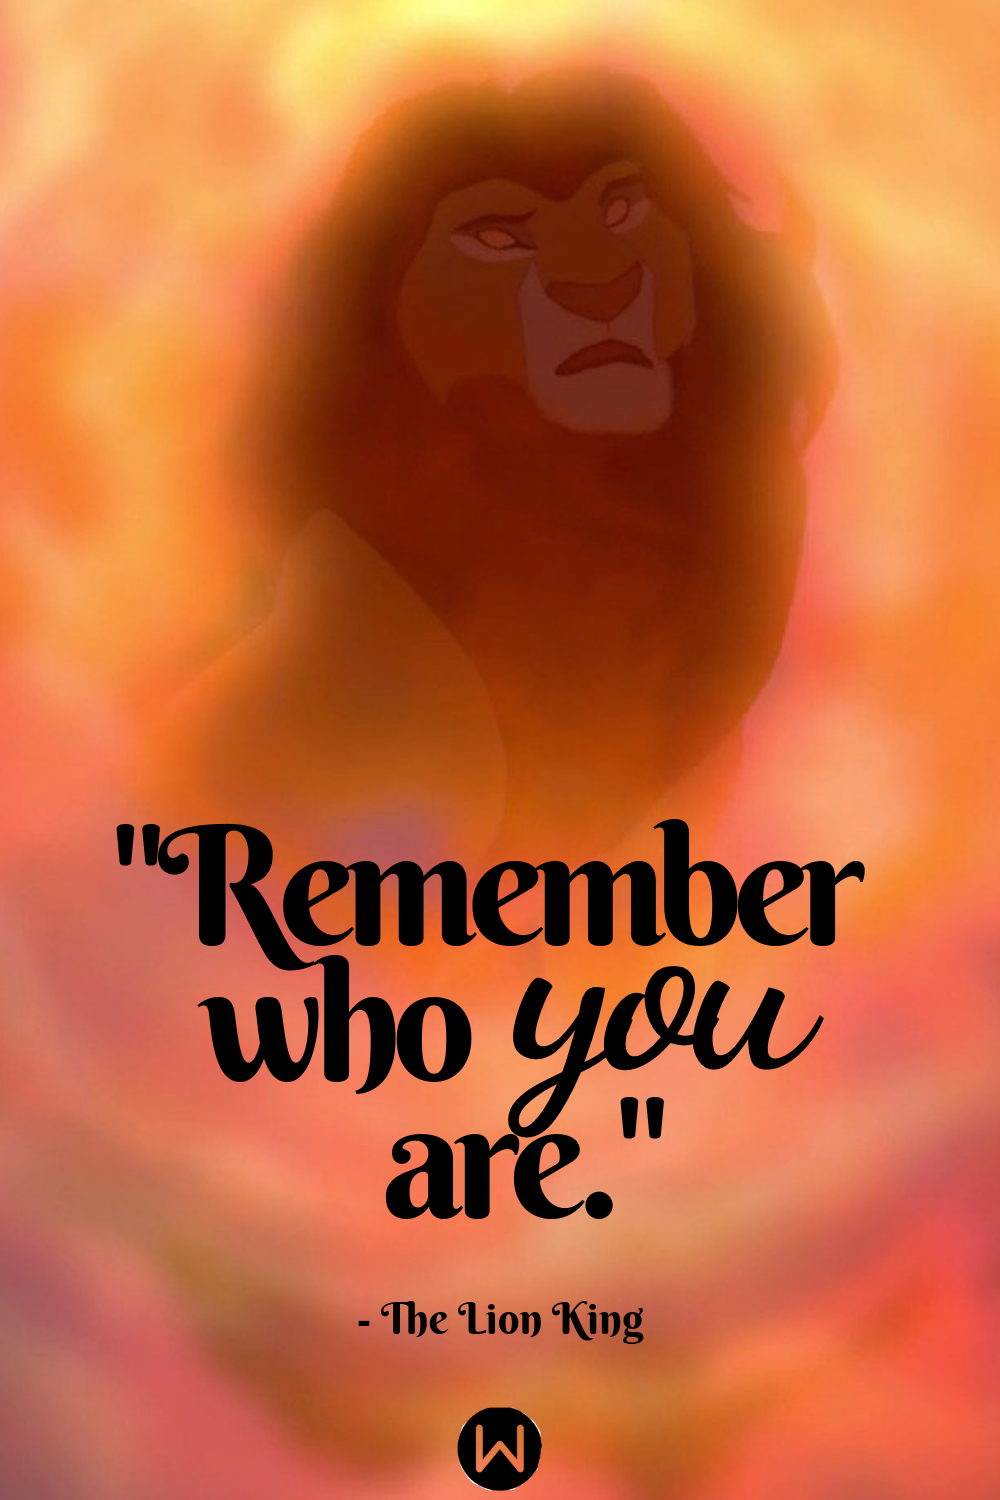 movies, the lion king, Disney, quote